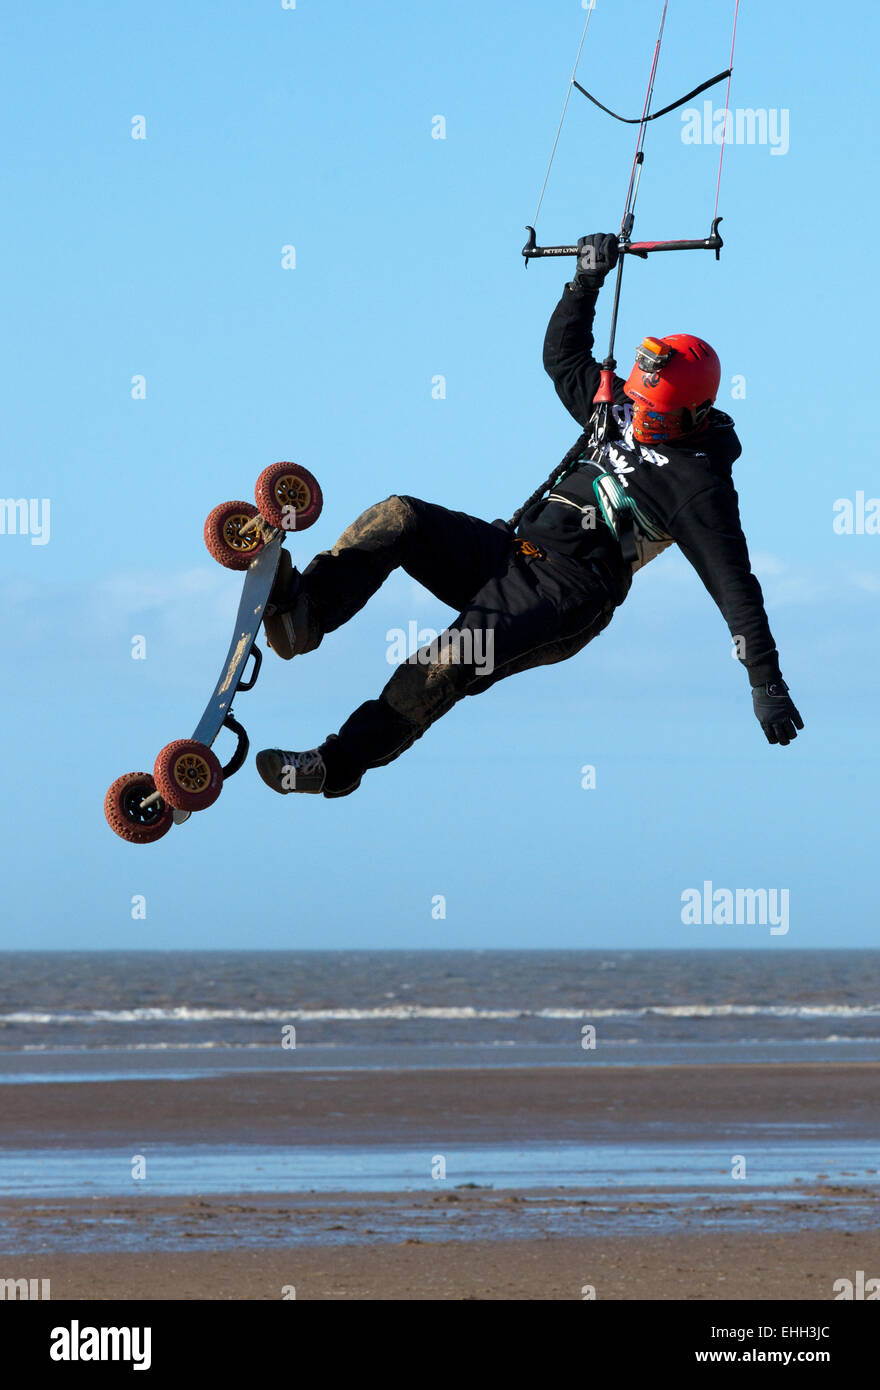 Carl Kirton pratiquer son kite-surf techniques sur la plage de Southport, Merseyside, Royaume-Uni Photo Stock